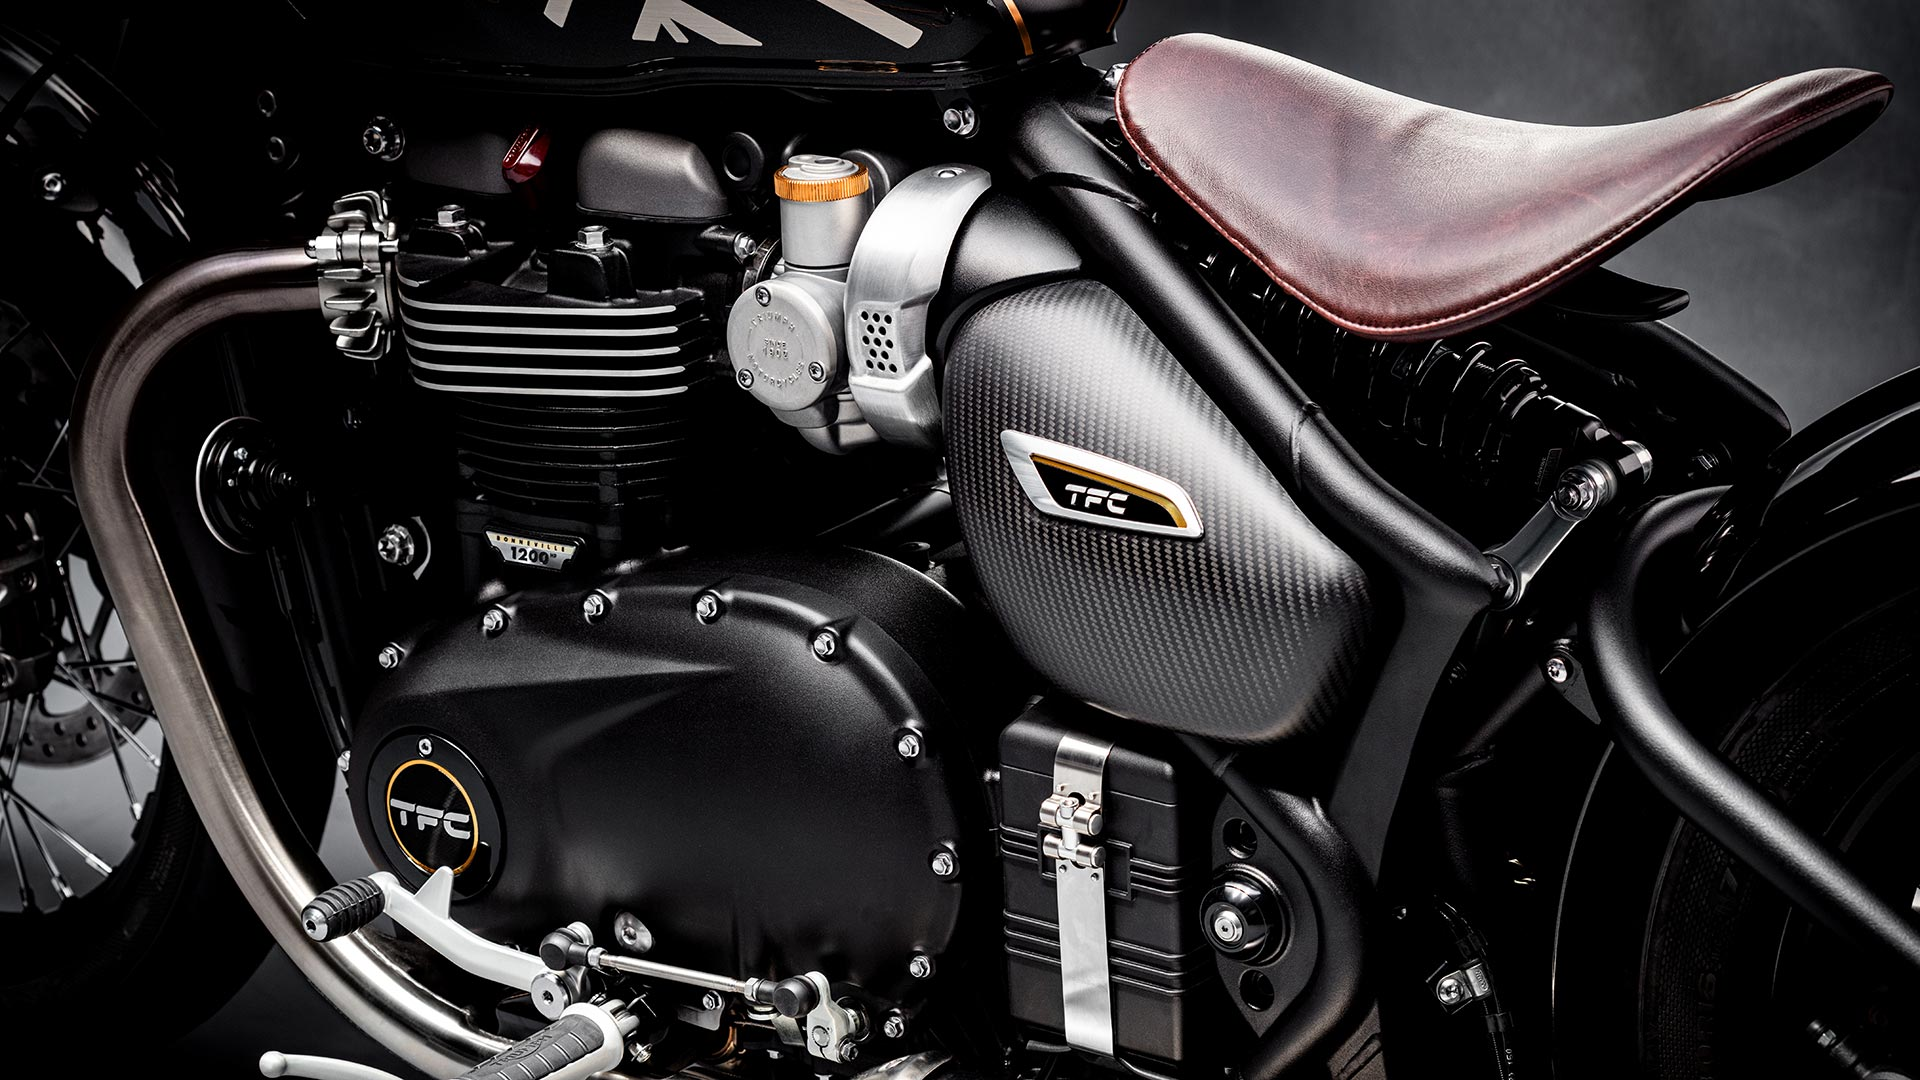 Close-up shot of the Triumph Bobber TFC's powerful engine